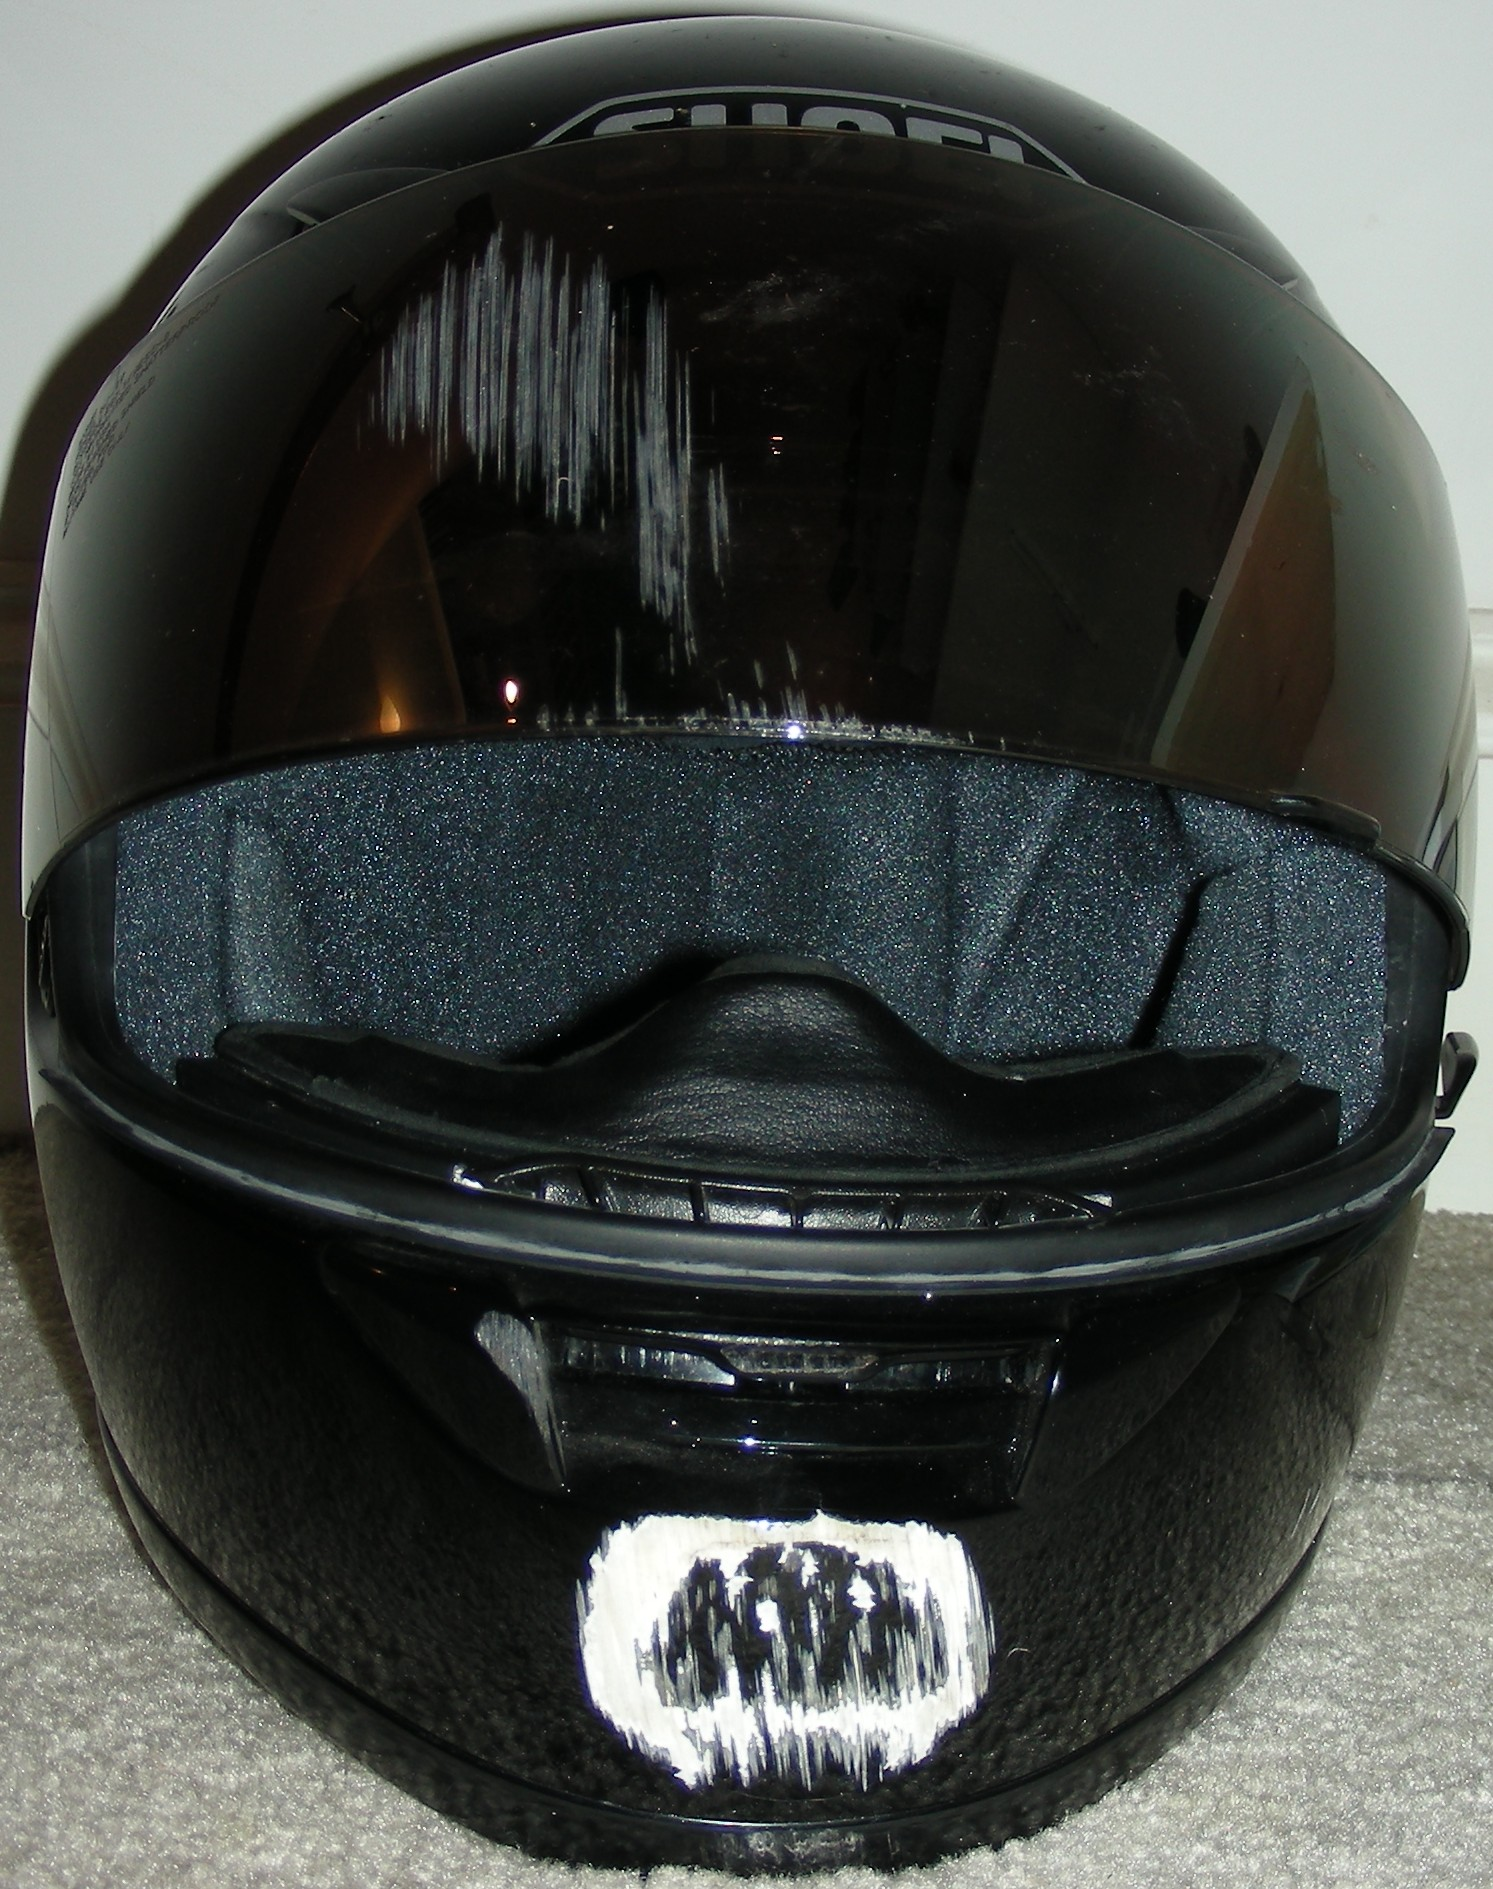 motorcycle helmet with damage after accident